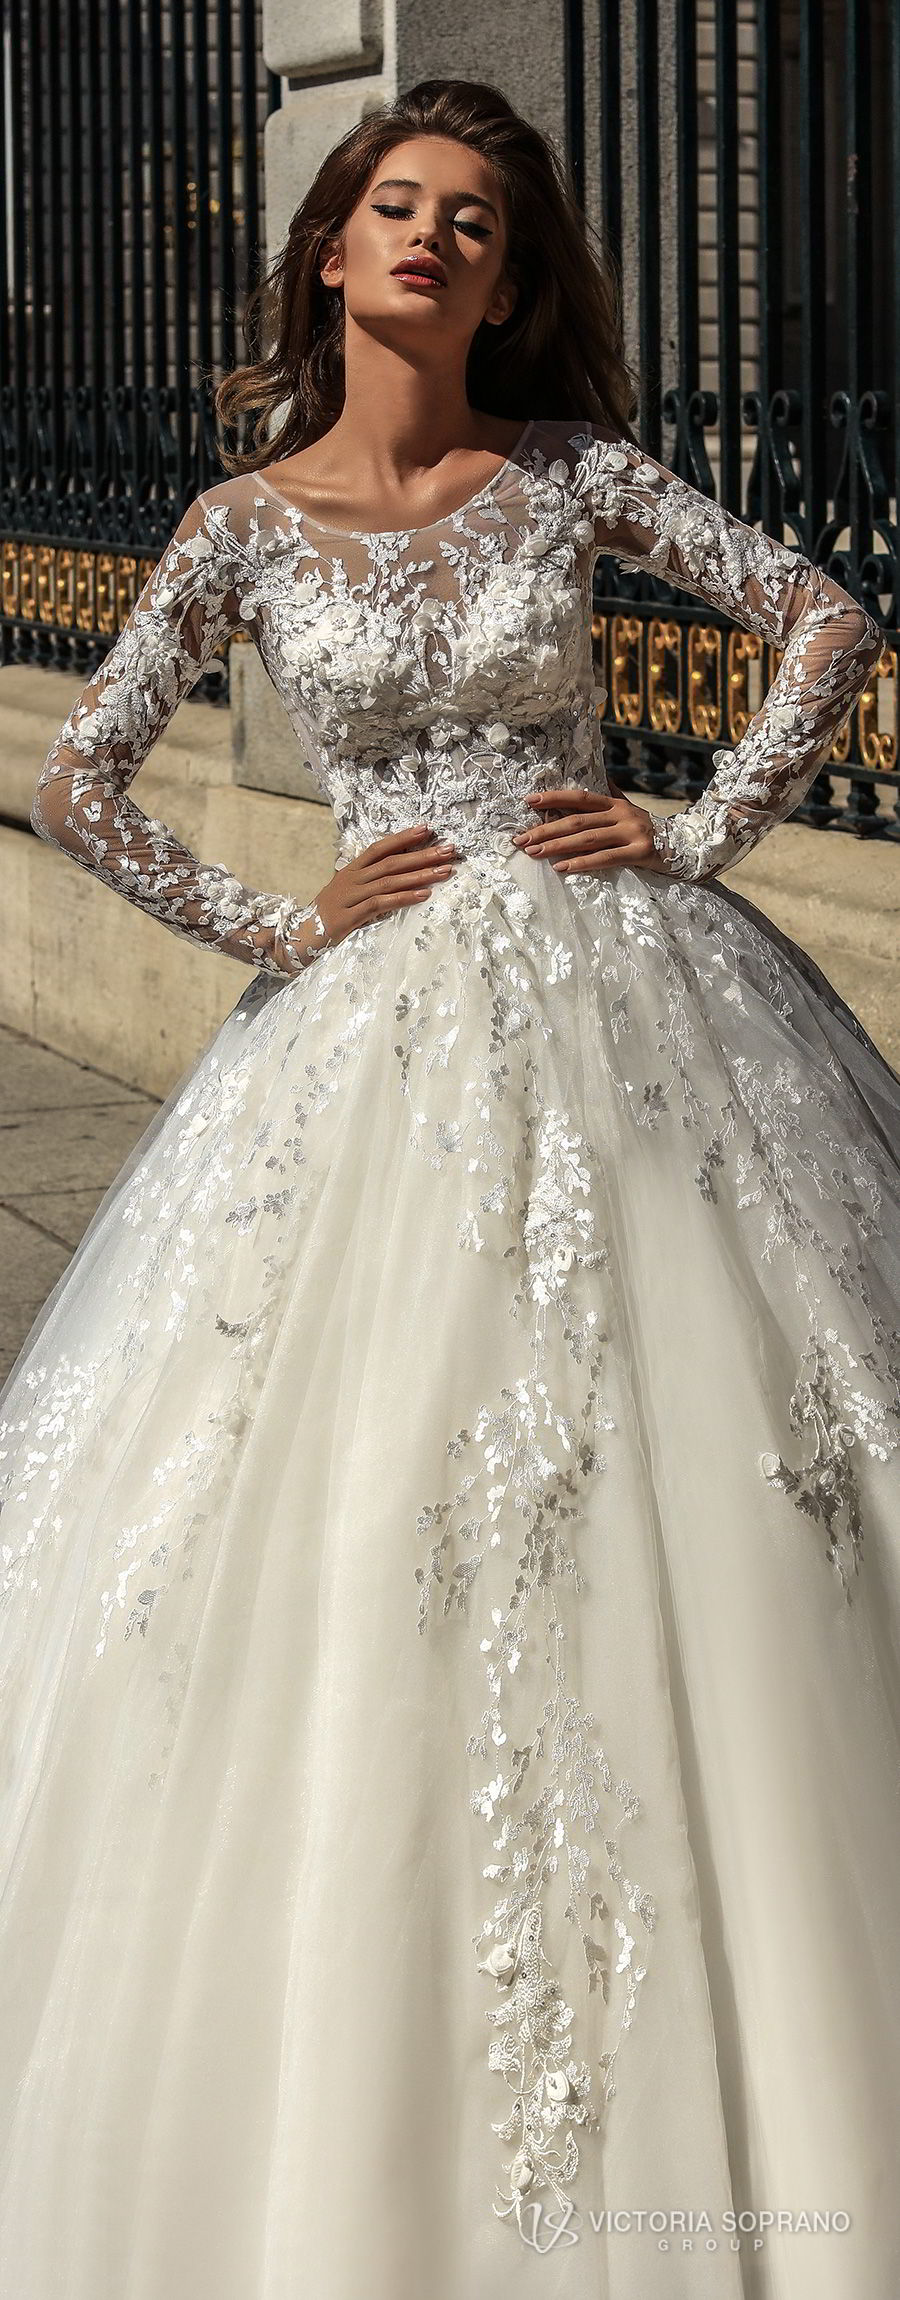 cfed6b735f victoria soprano 2018 bridal long sleeves illusion jewel sweetheart  neckline heavily embellished bodice princess ball gown